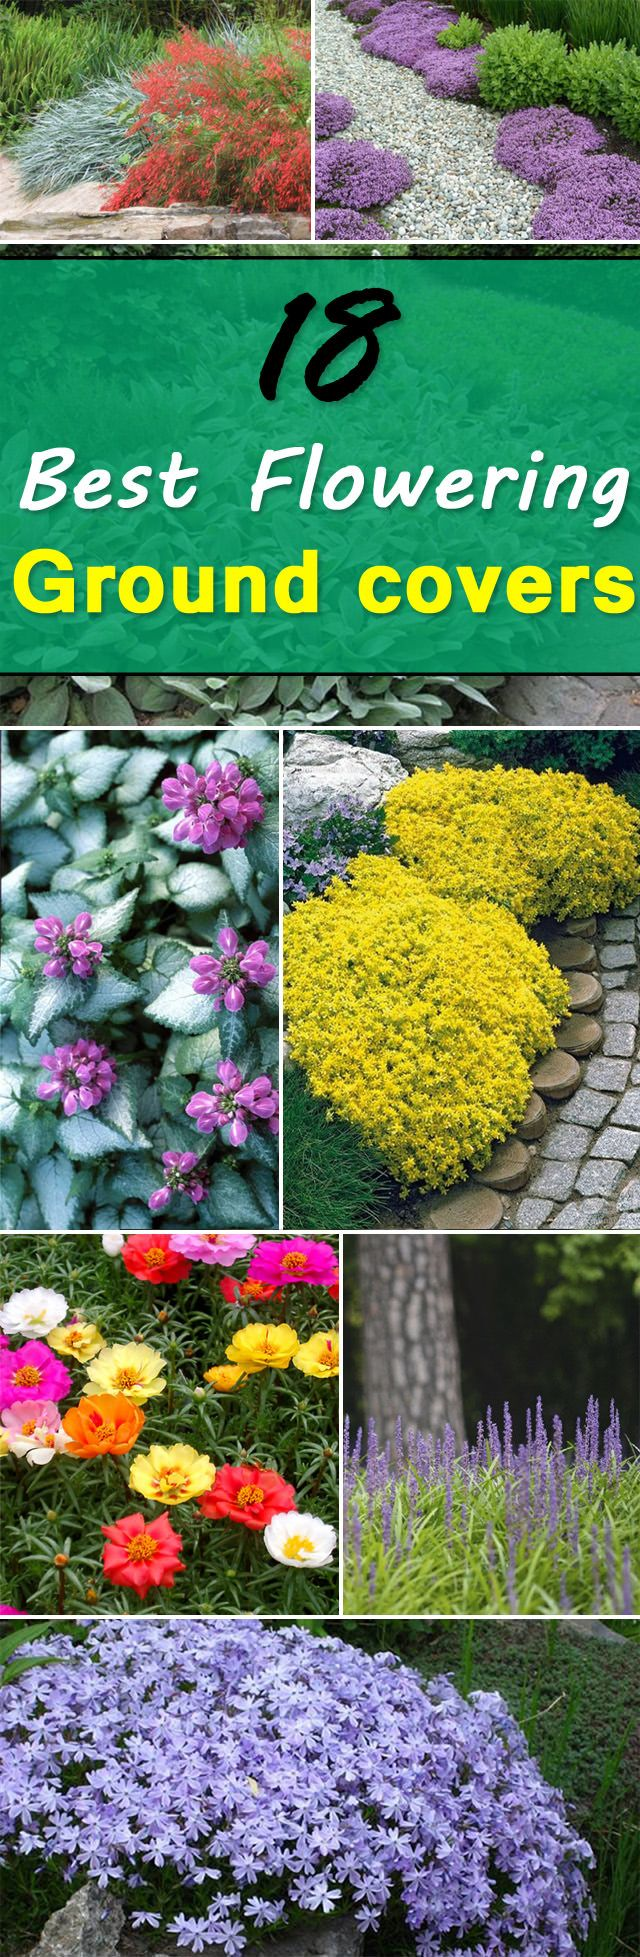 Check out these 18 Flowering Ground Cover Plants, you'll find some best low growing plants on this list, they're not only easy to grow but looks beautiful too.